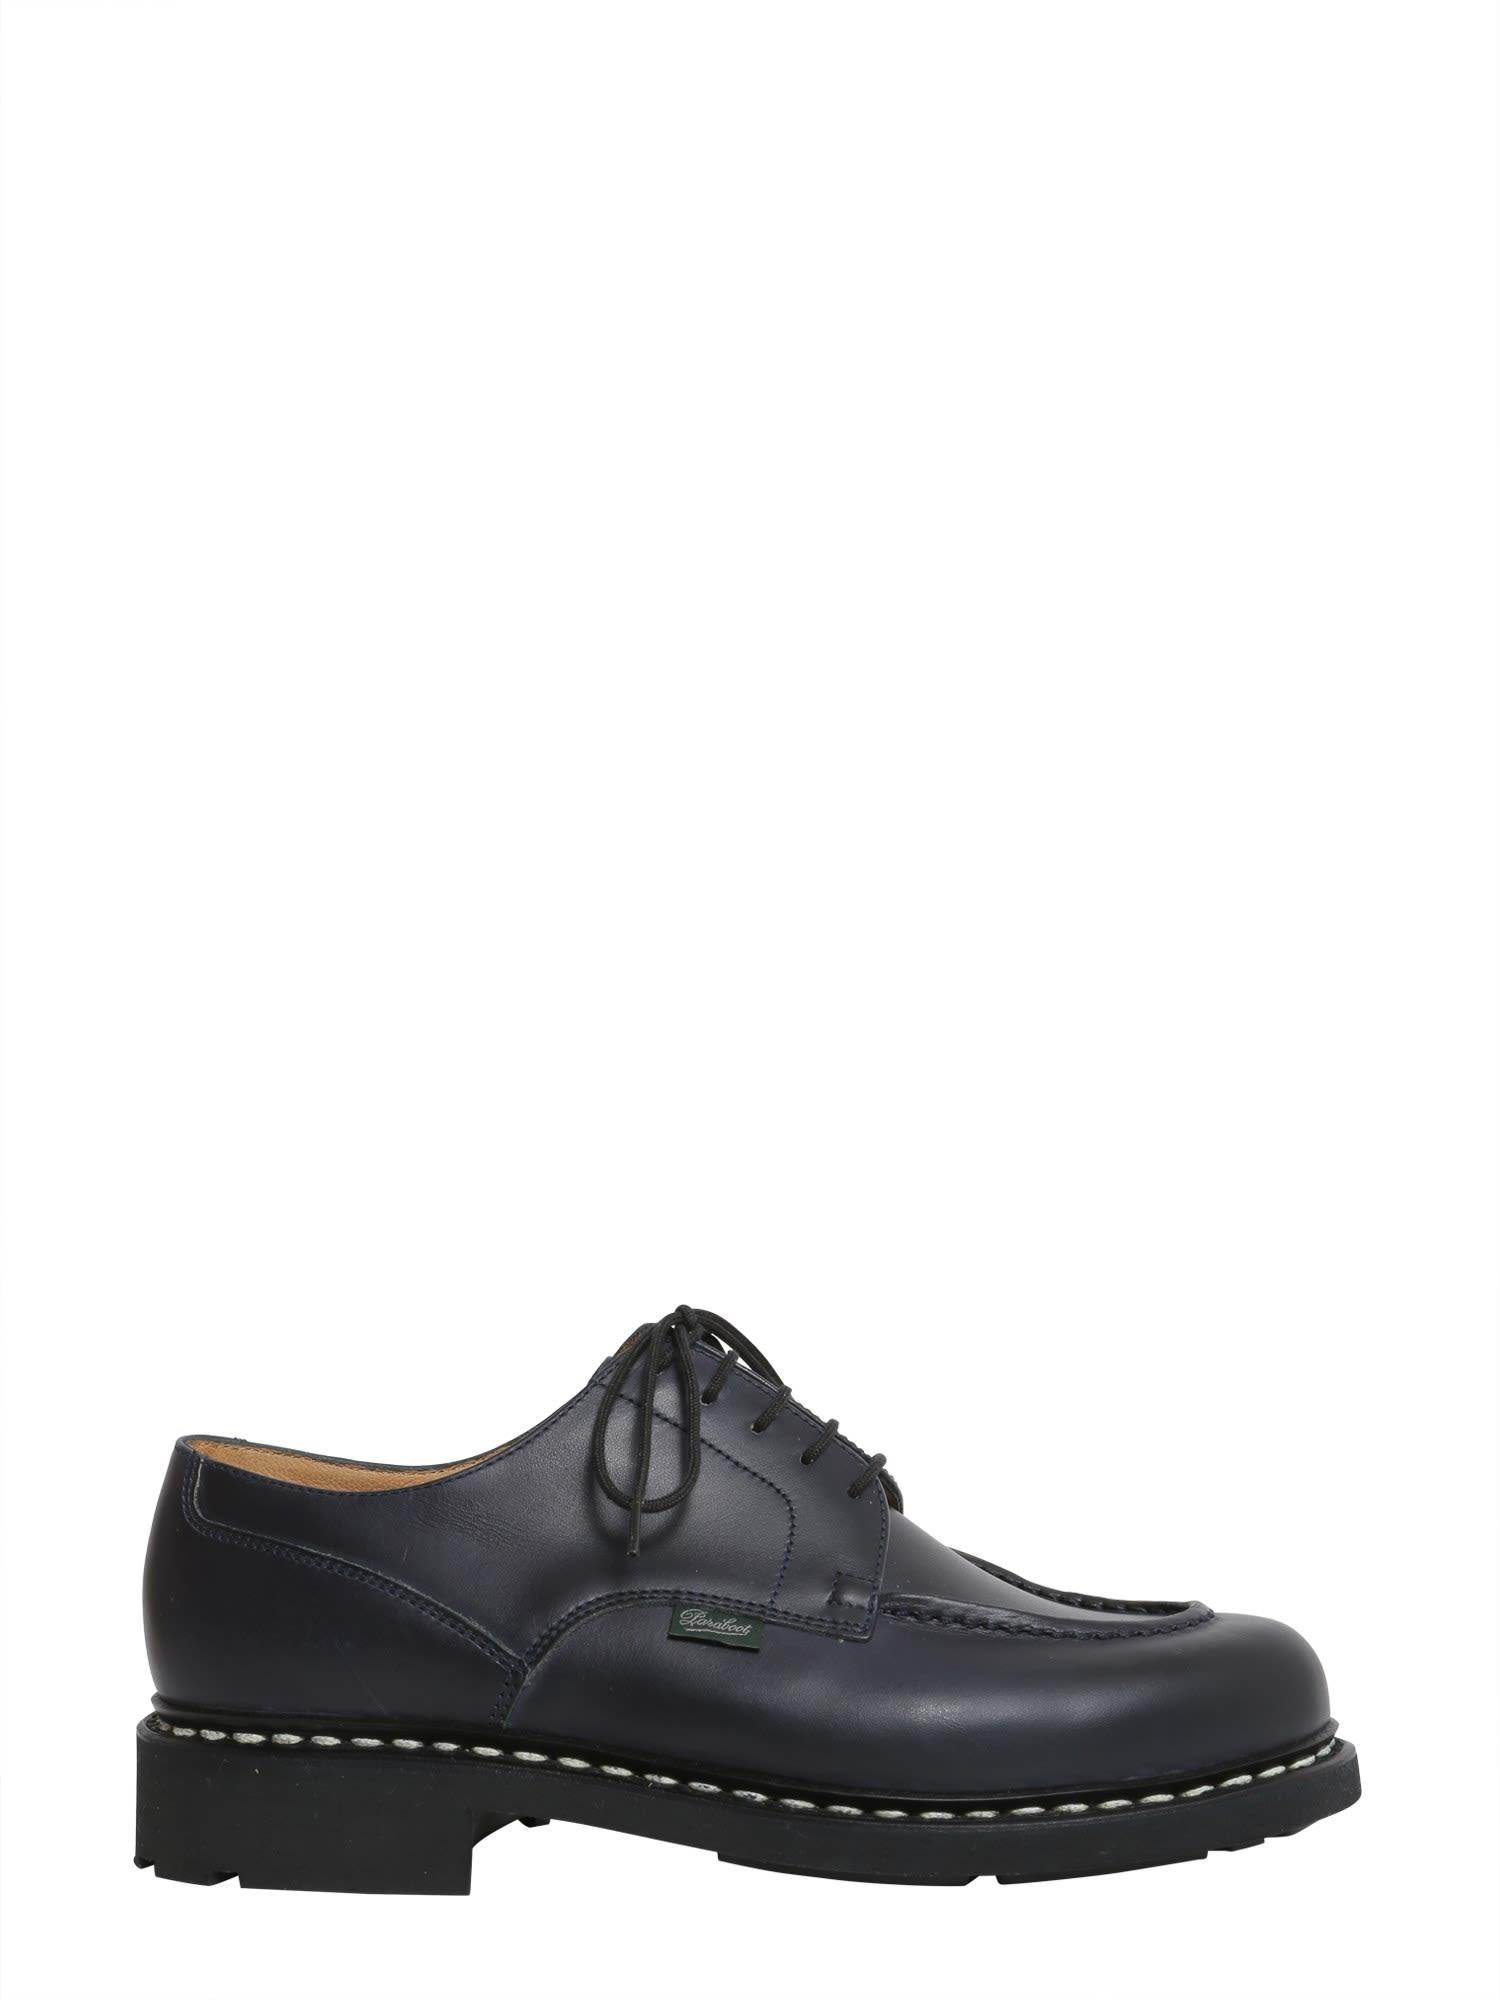 Paraboot Chambord Lace-up Shoes In Blu